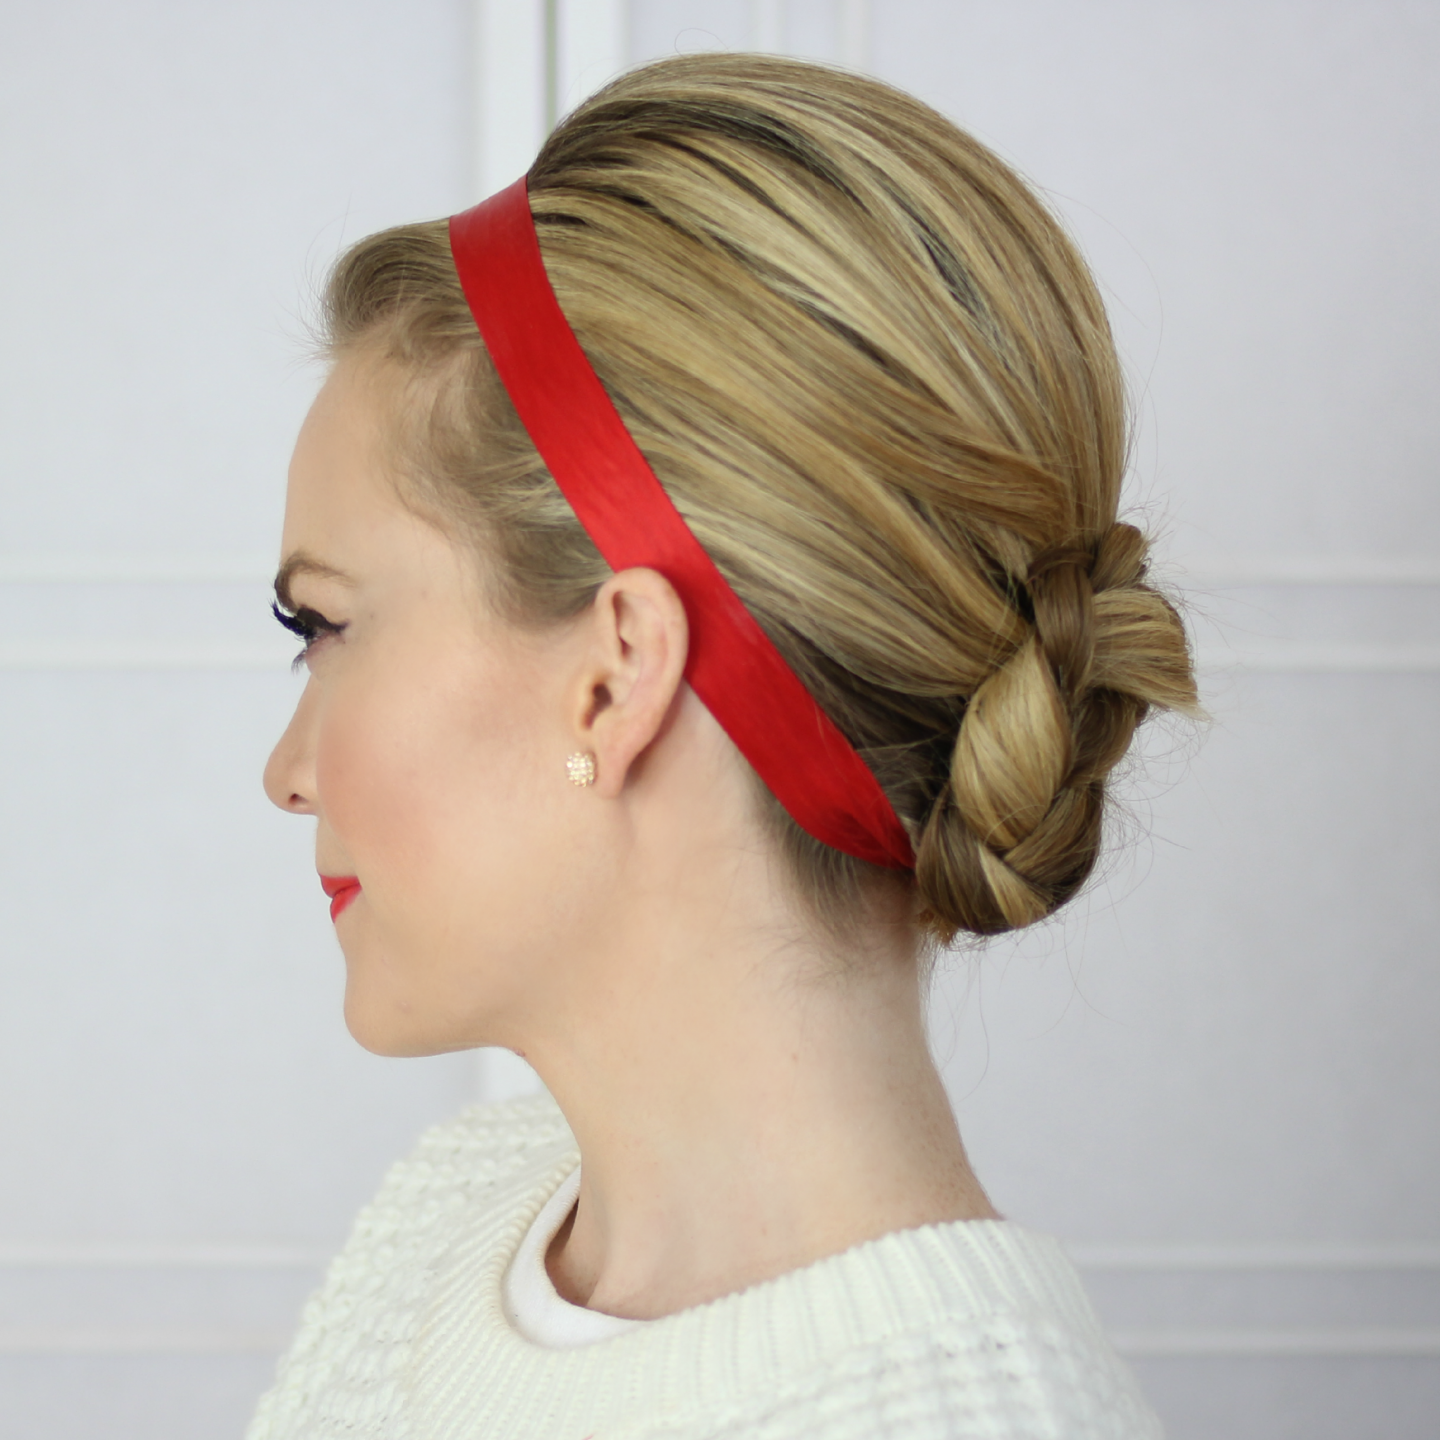 Diy ribbon headband